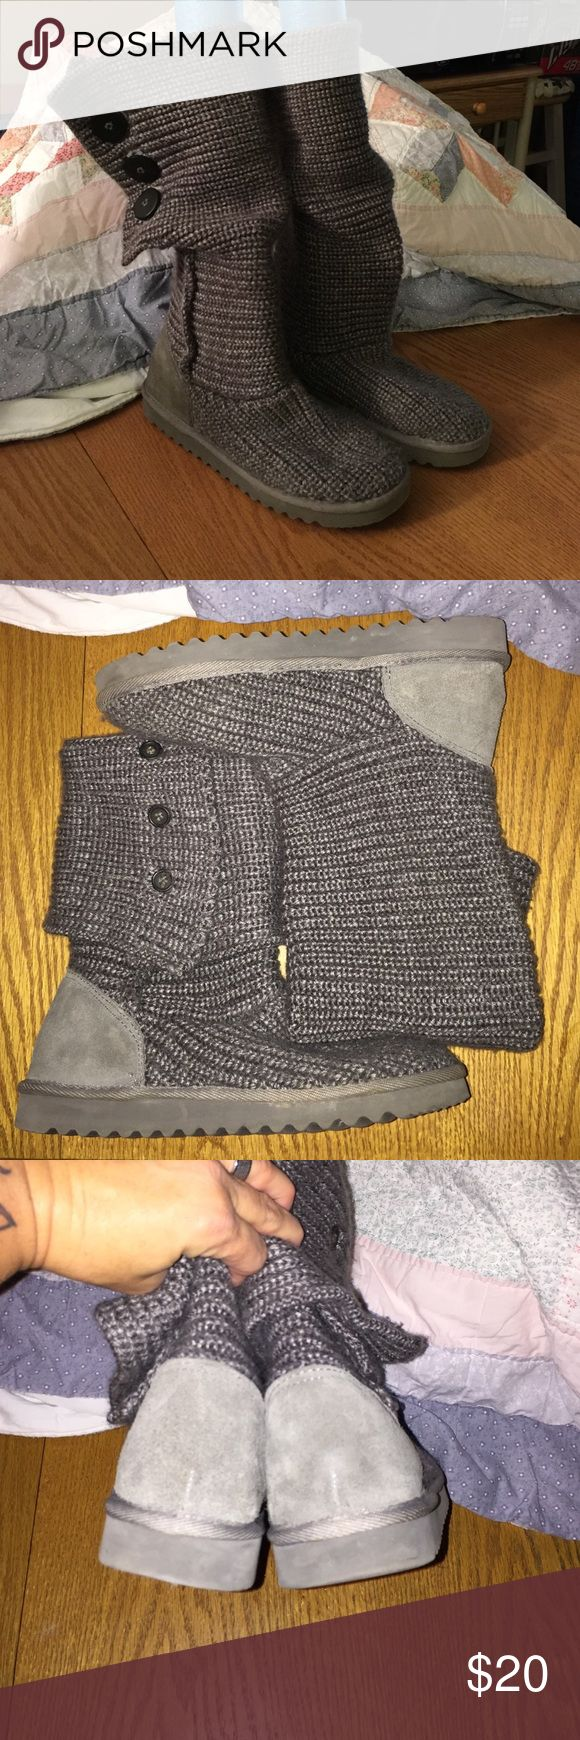 Kirkland Cardi Sweater Boots Sz W8 Kirkland Costco charcoal gray cardigan sweater boots, just in time for fall and ready for you to be cozy inonly wore a few times so they're in amazing shape and super cute can be worn up, folded or a lil slouchy women's size 8 kirkland Shoes